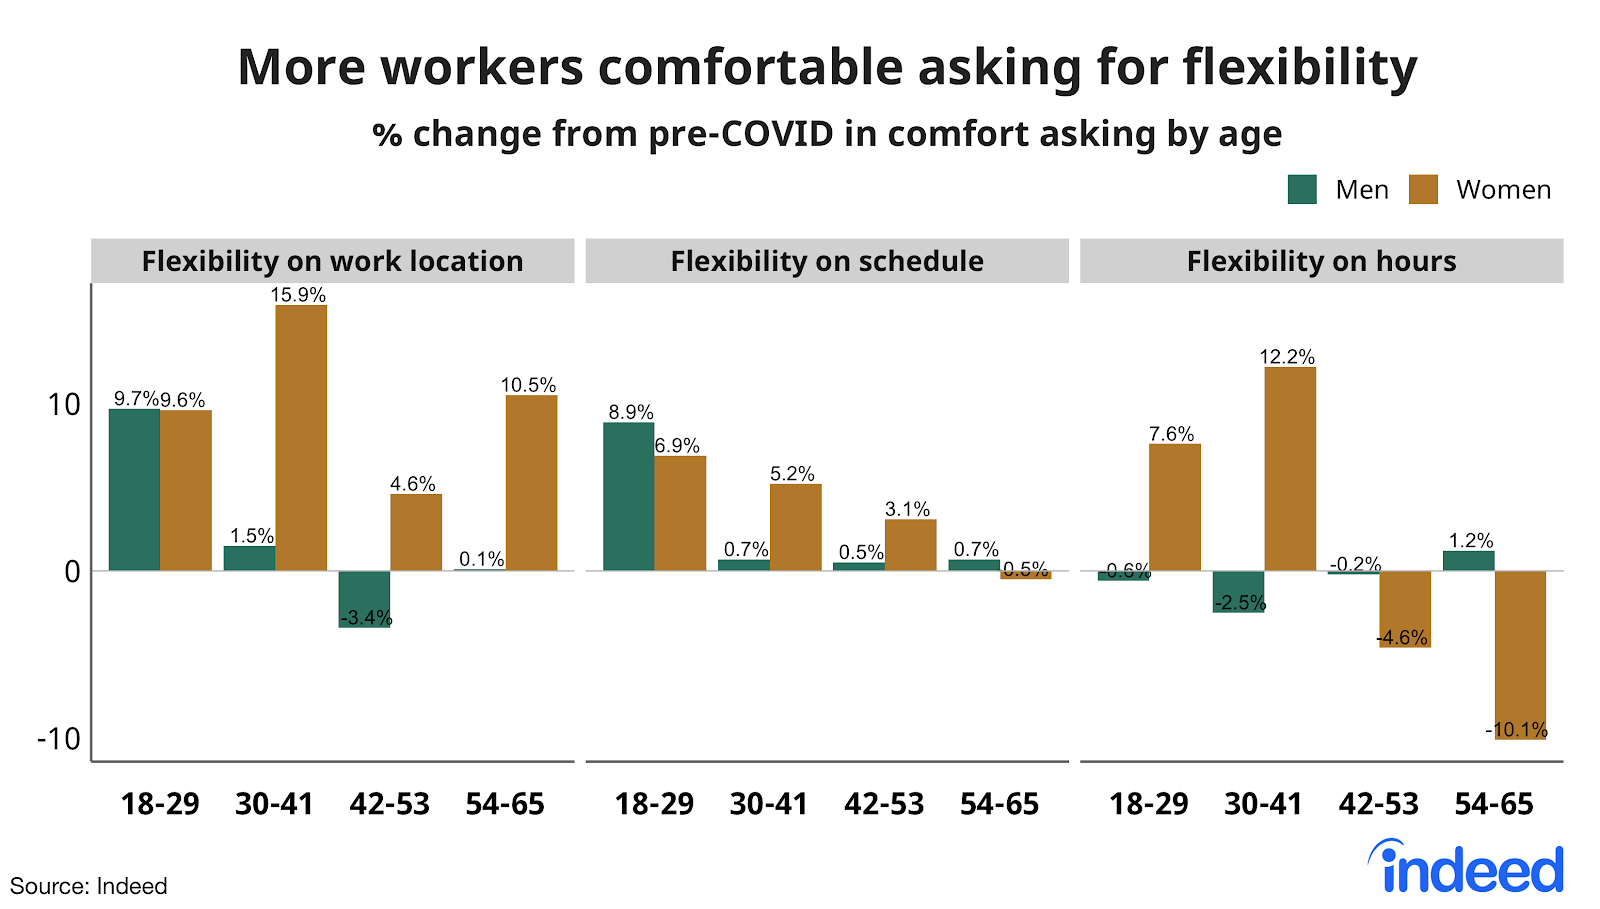 Double bar chart between men and women showing how more workers are comfortable asking for flexibility